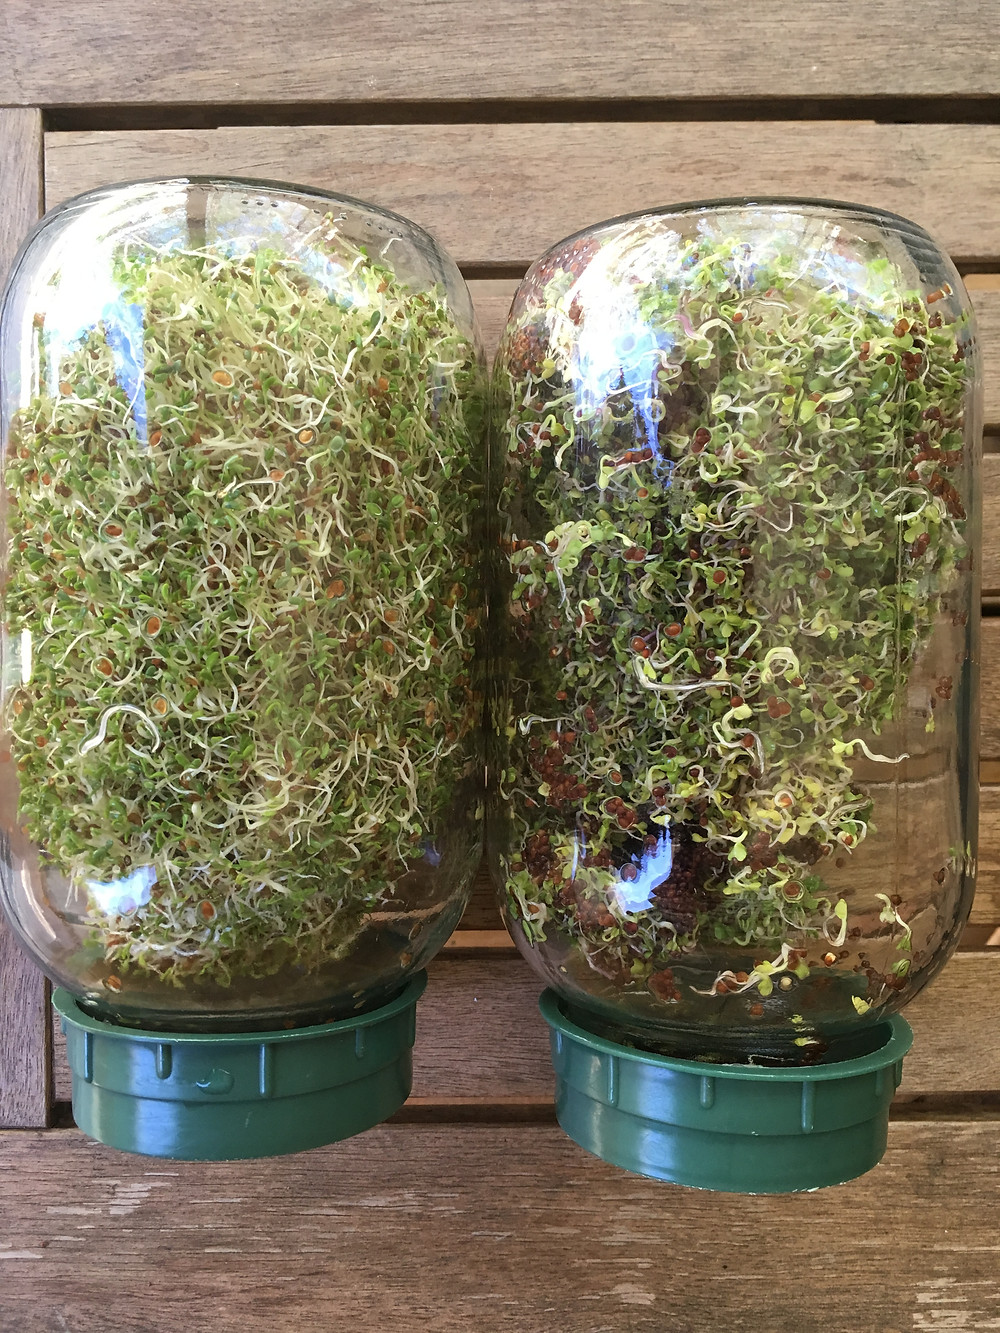 Alfalfa and broccoli sprouts